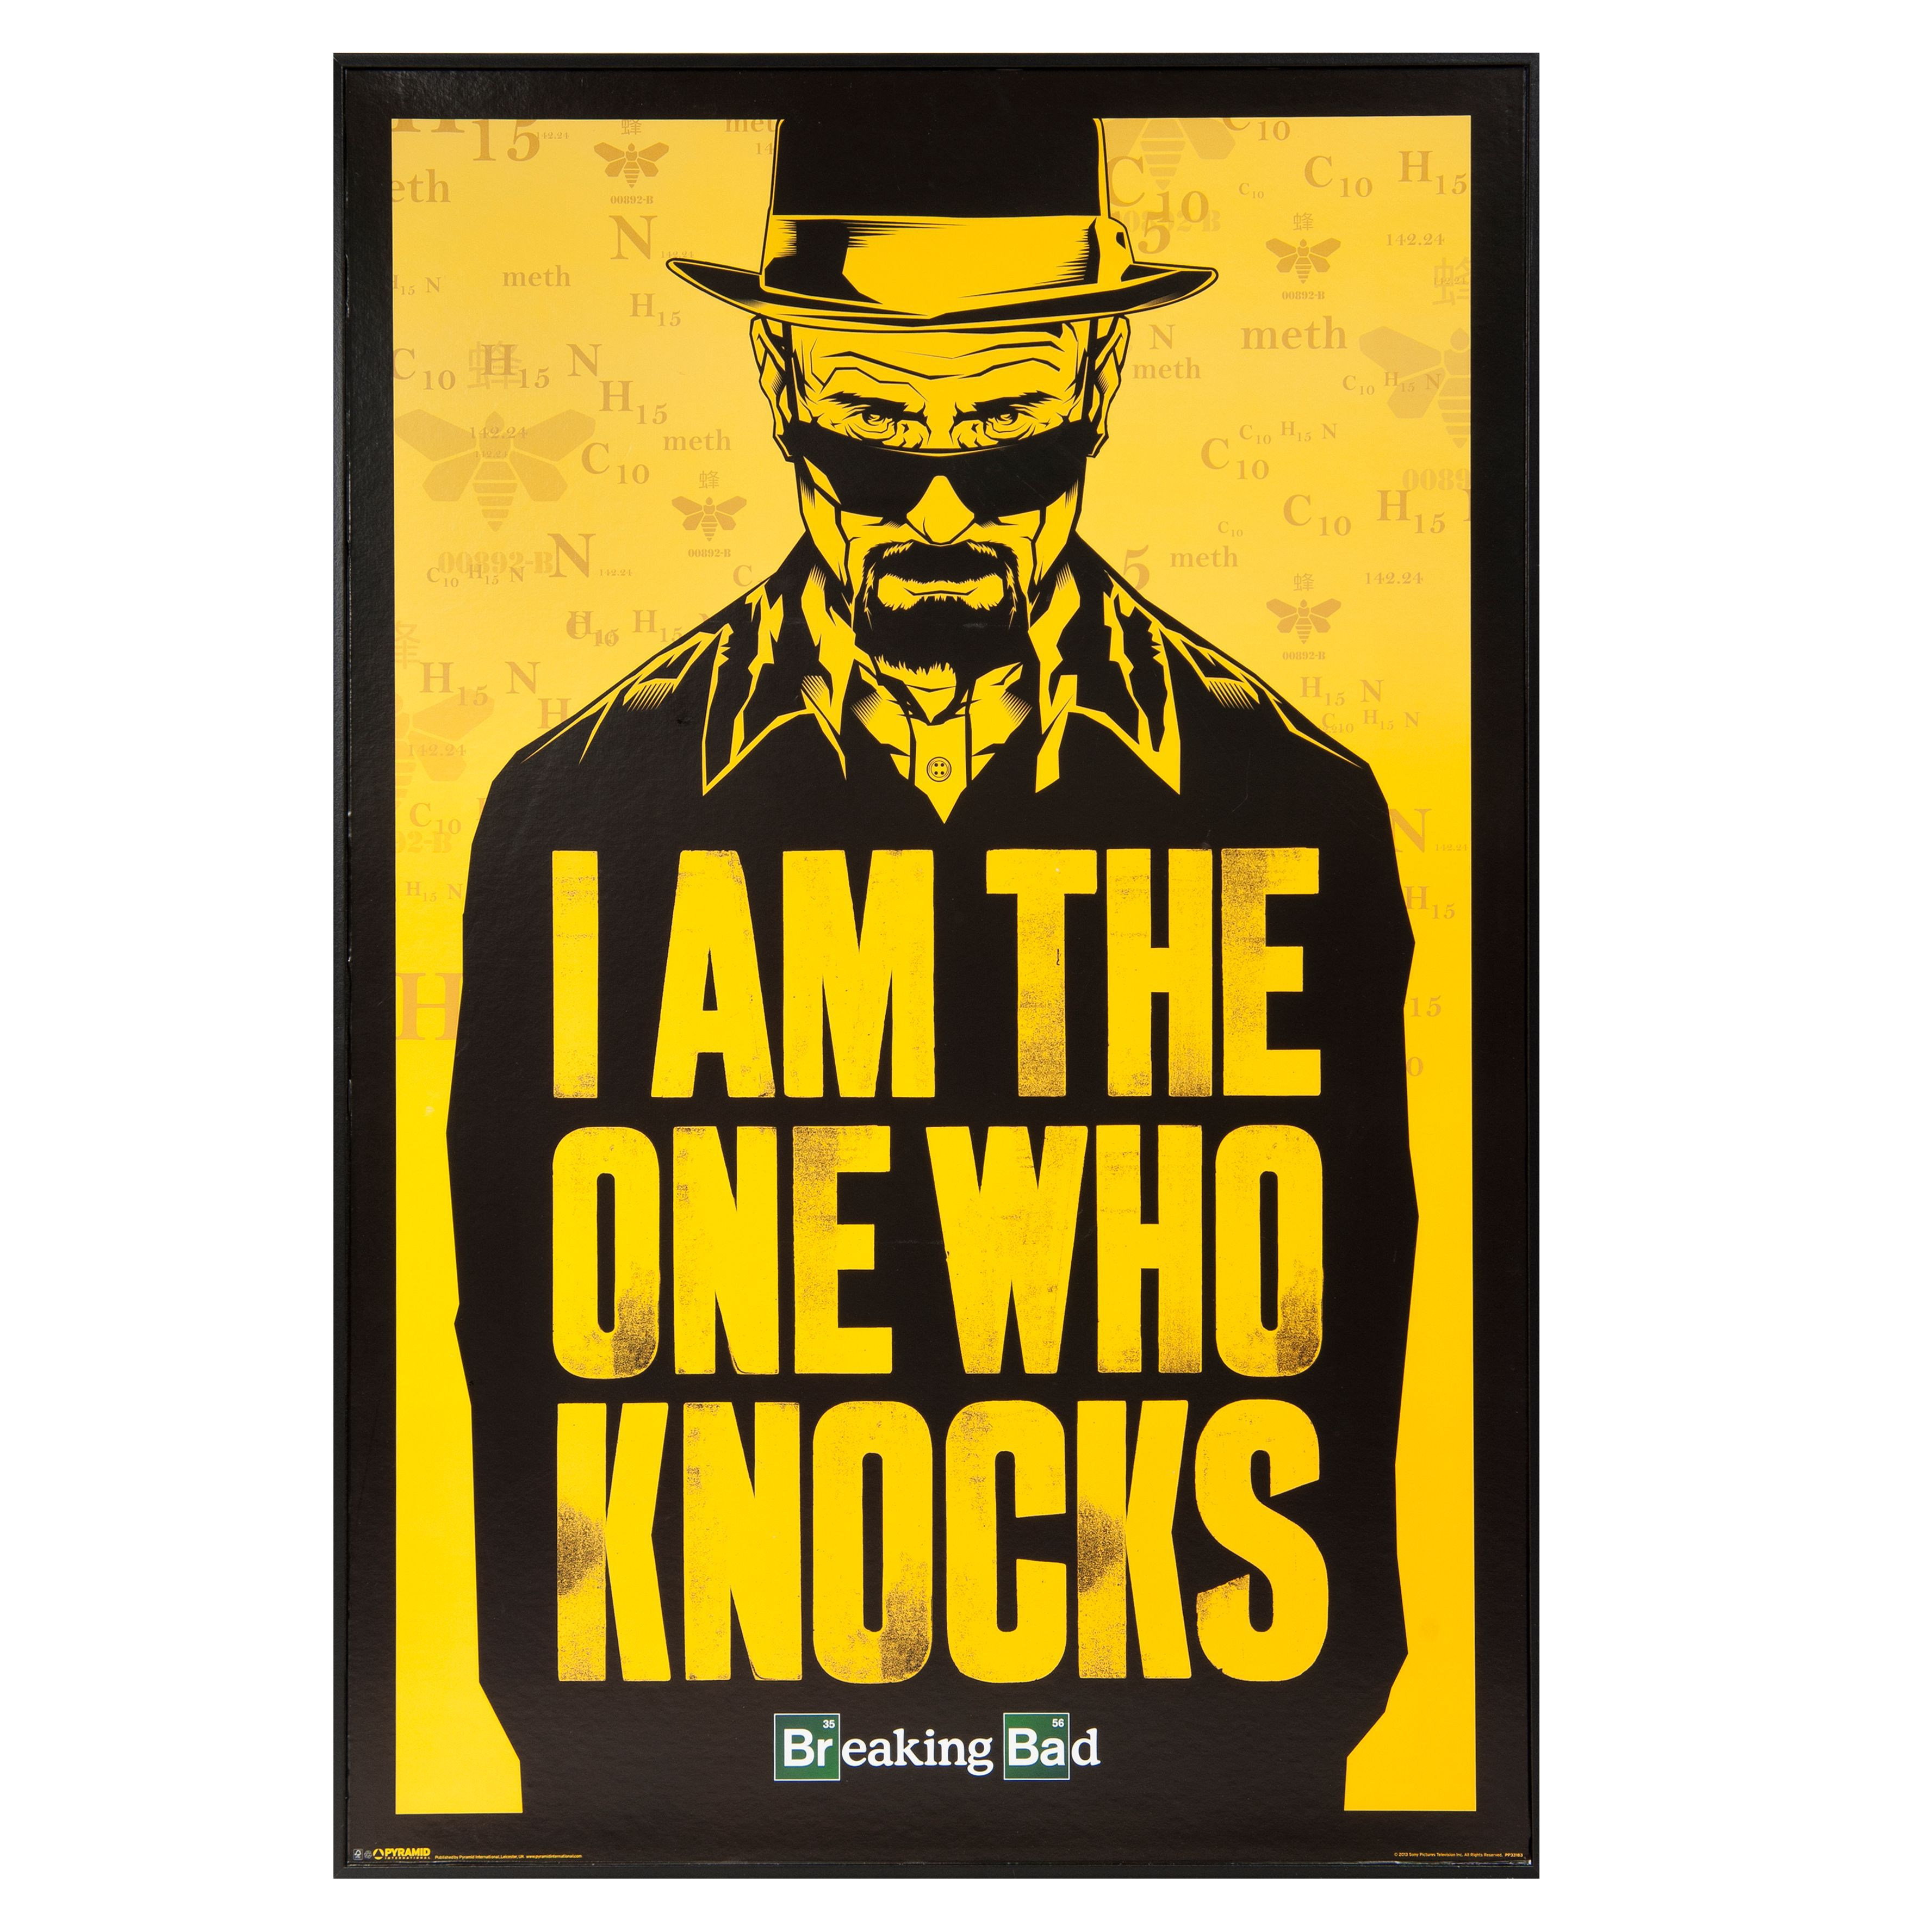 Breaking bad black yellow framed picture w630mm h930mm breaking bad black yellow framed picture w630mm h930mm departments diy at bq jeuxipadfo Choice Image